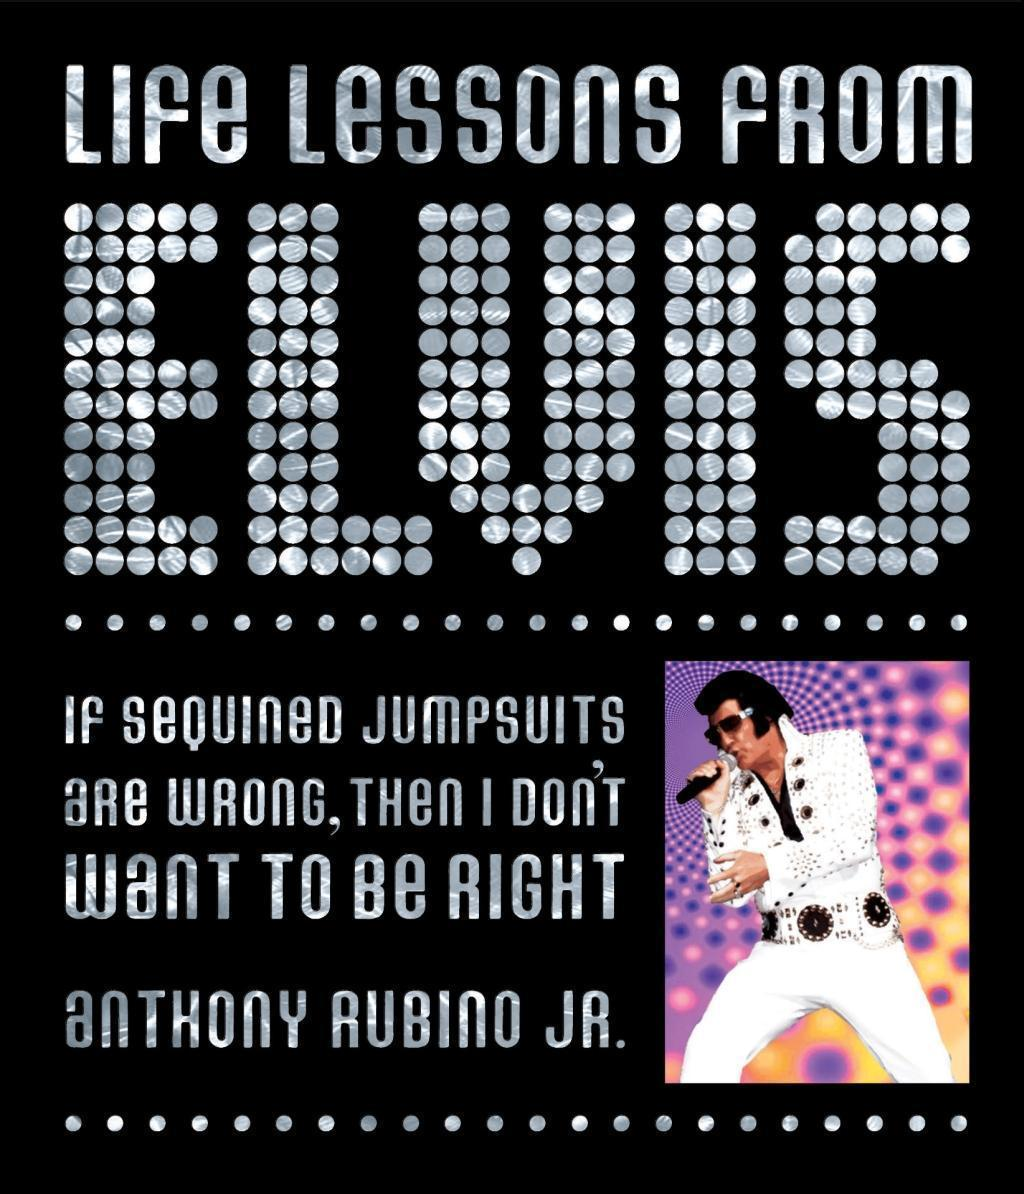 Life Lessons from Elvis